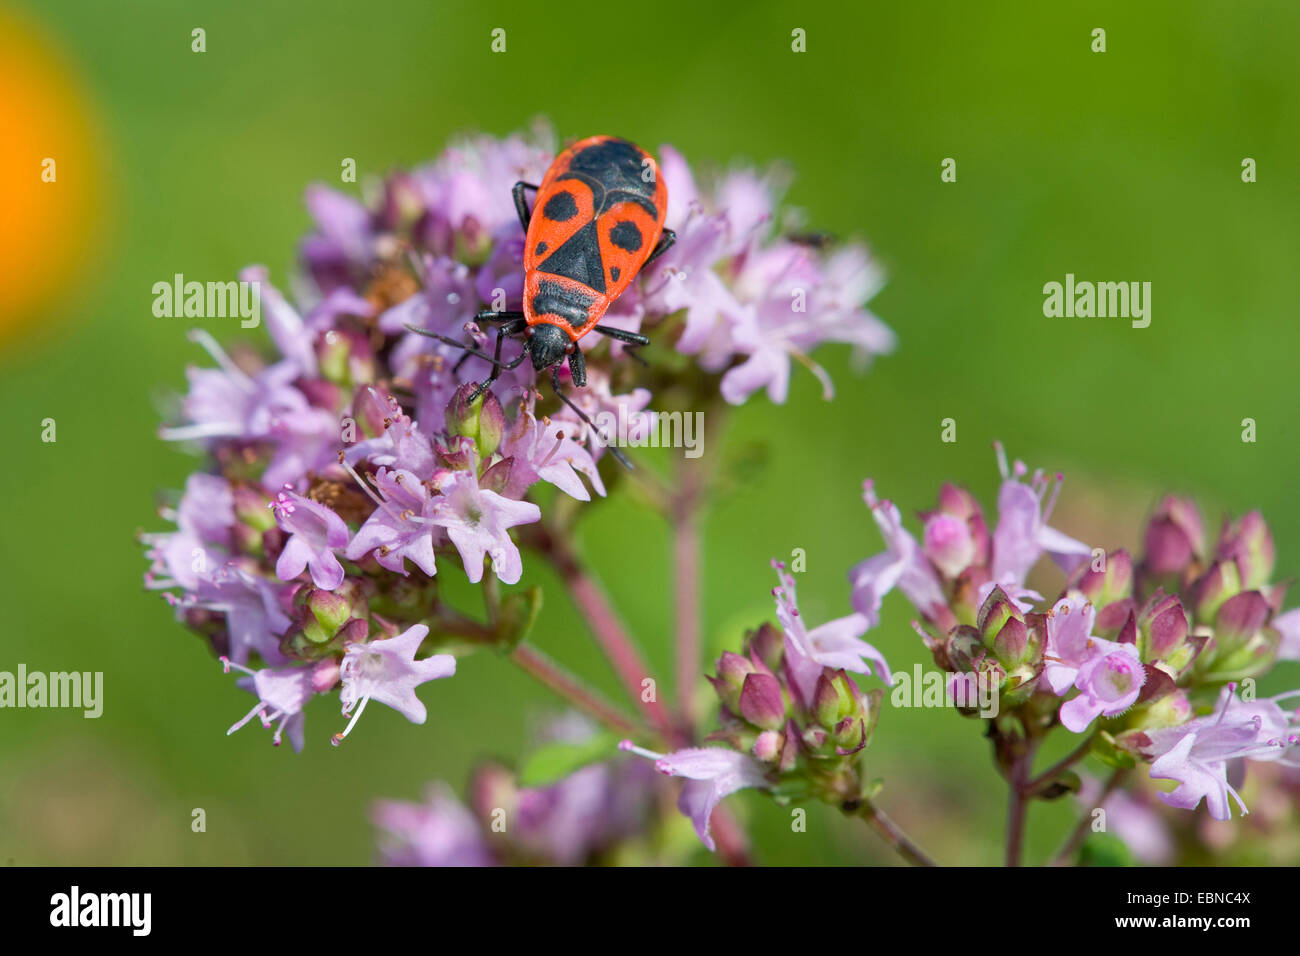 firebug (Pyrrhocoris apterus), sitting on wild marjoram, Germany - Stock Image